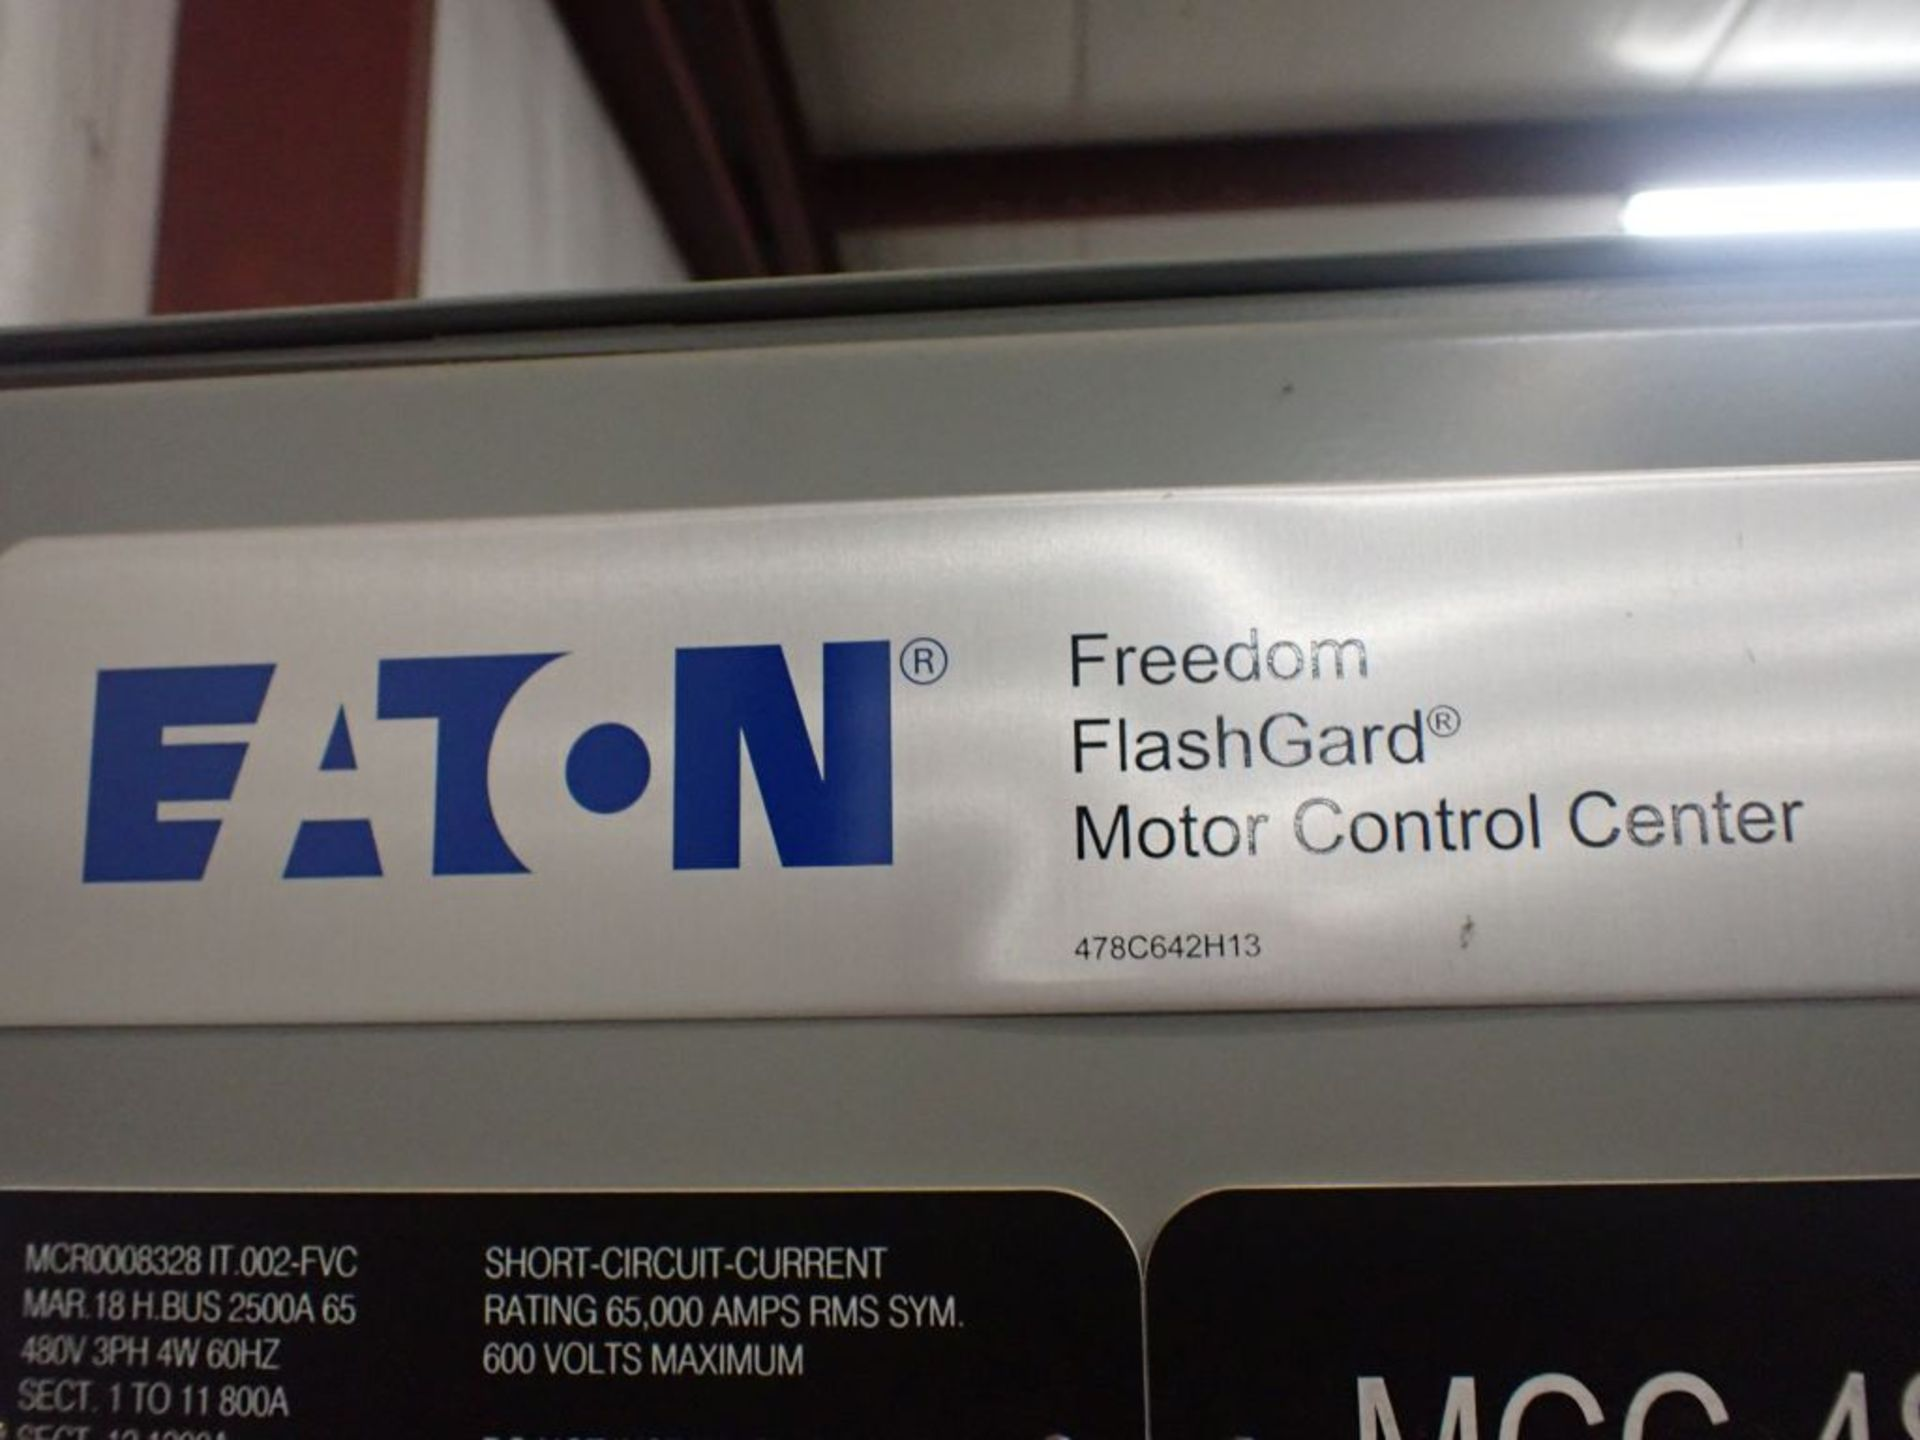 Eaton Freedom Flashgard Motor Control Center   (3) F216-15A-10HP; (1) FDRB-125A, with 150A - Image 15 of 57